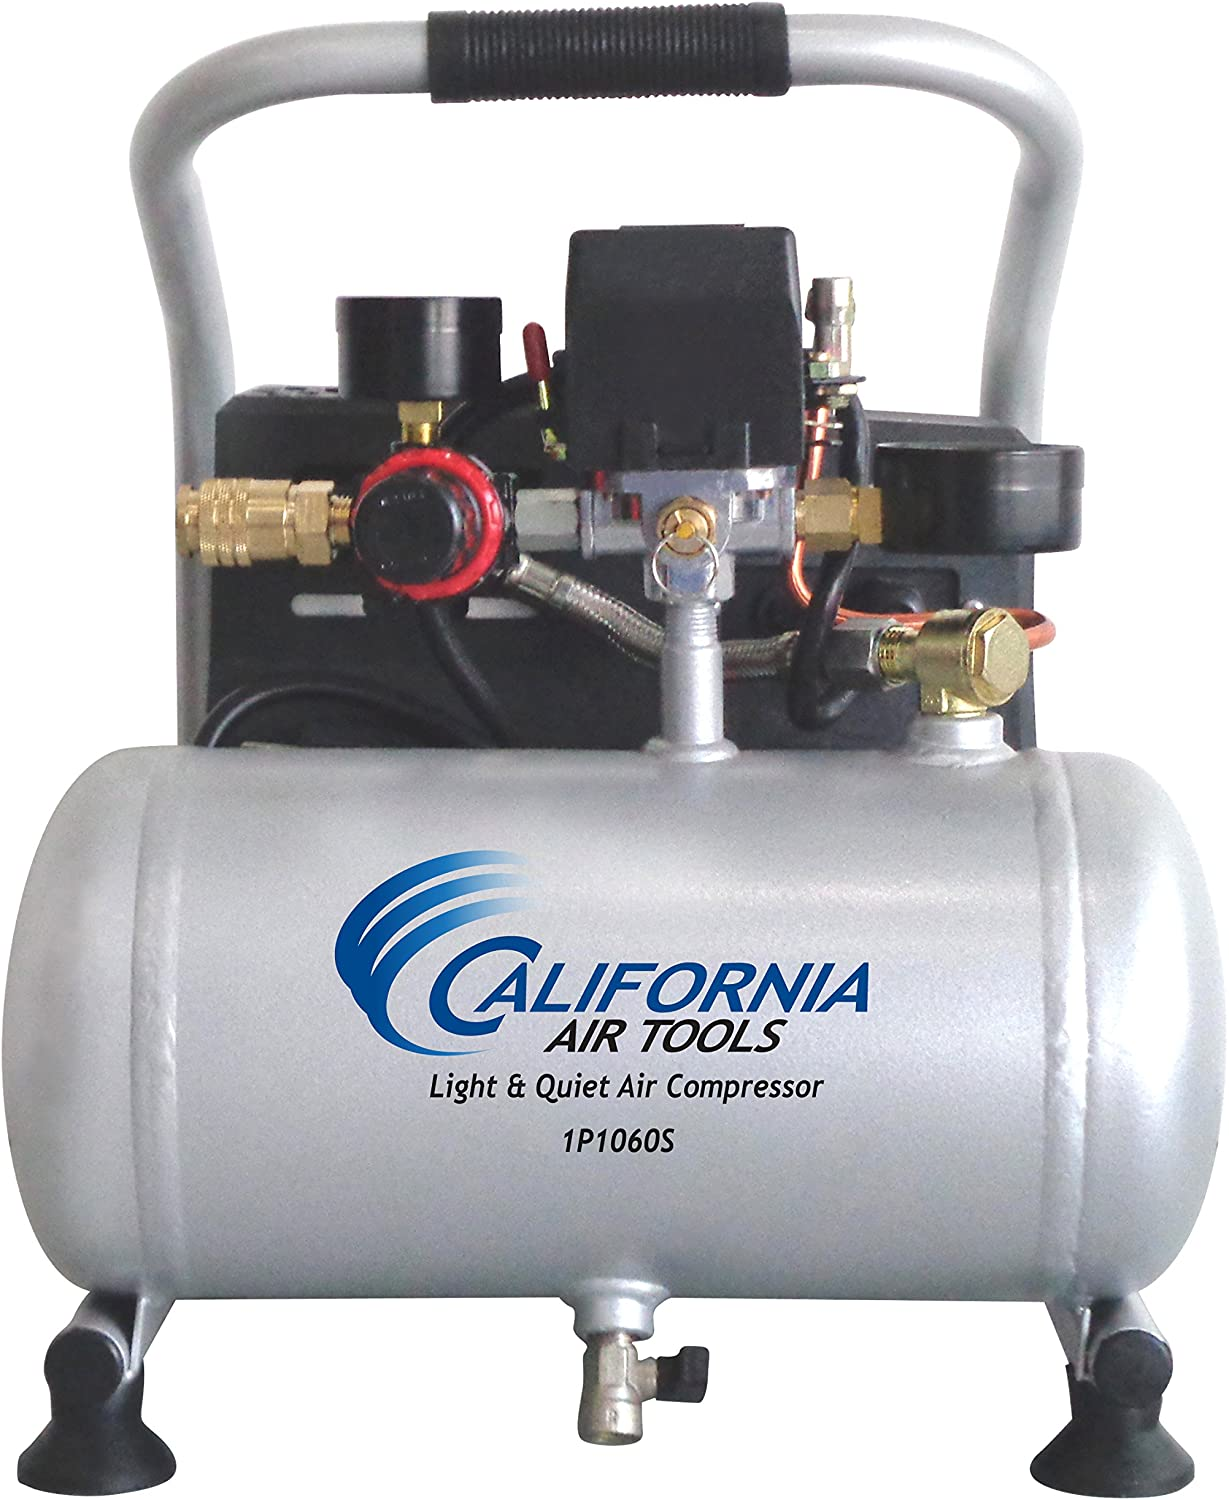 California Air Tools Compressor